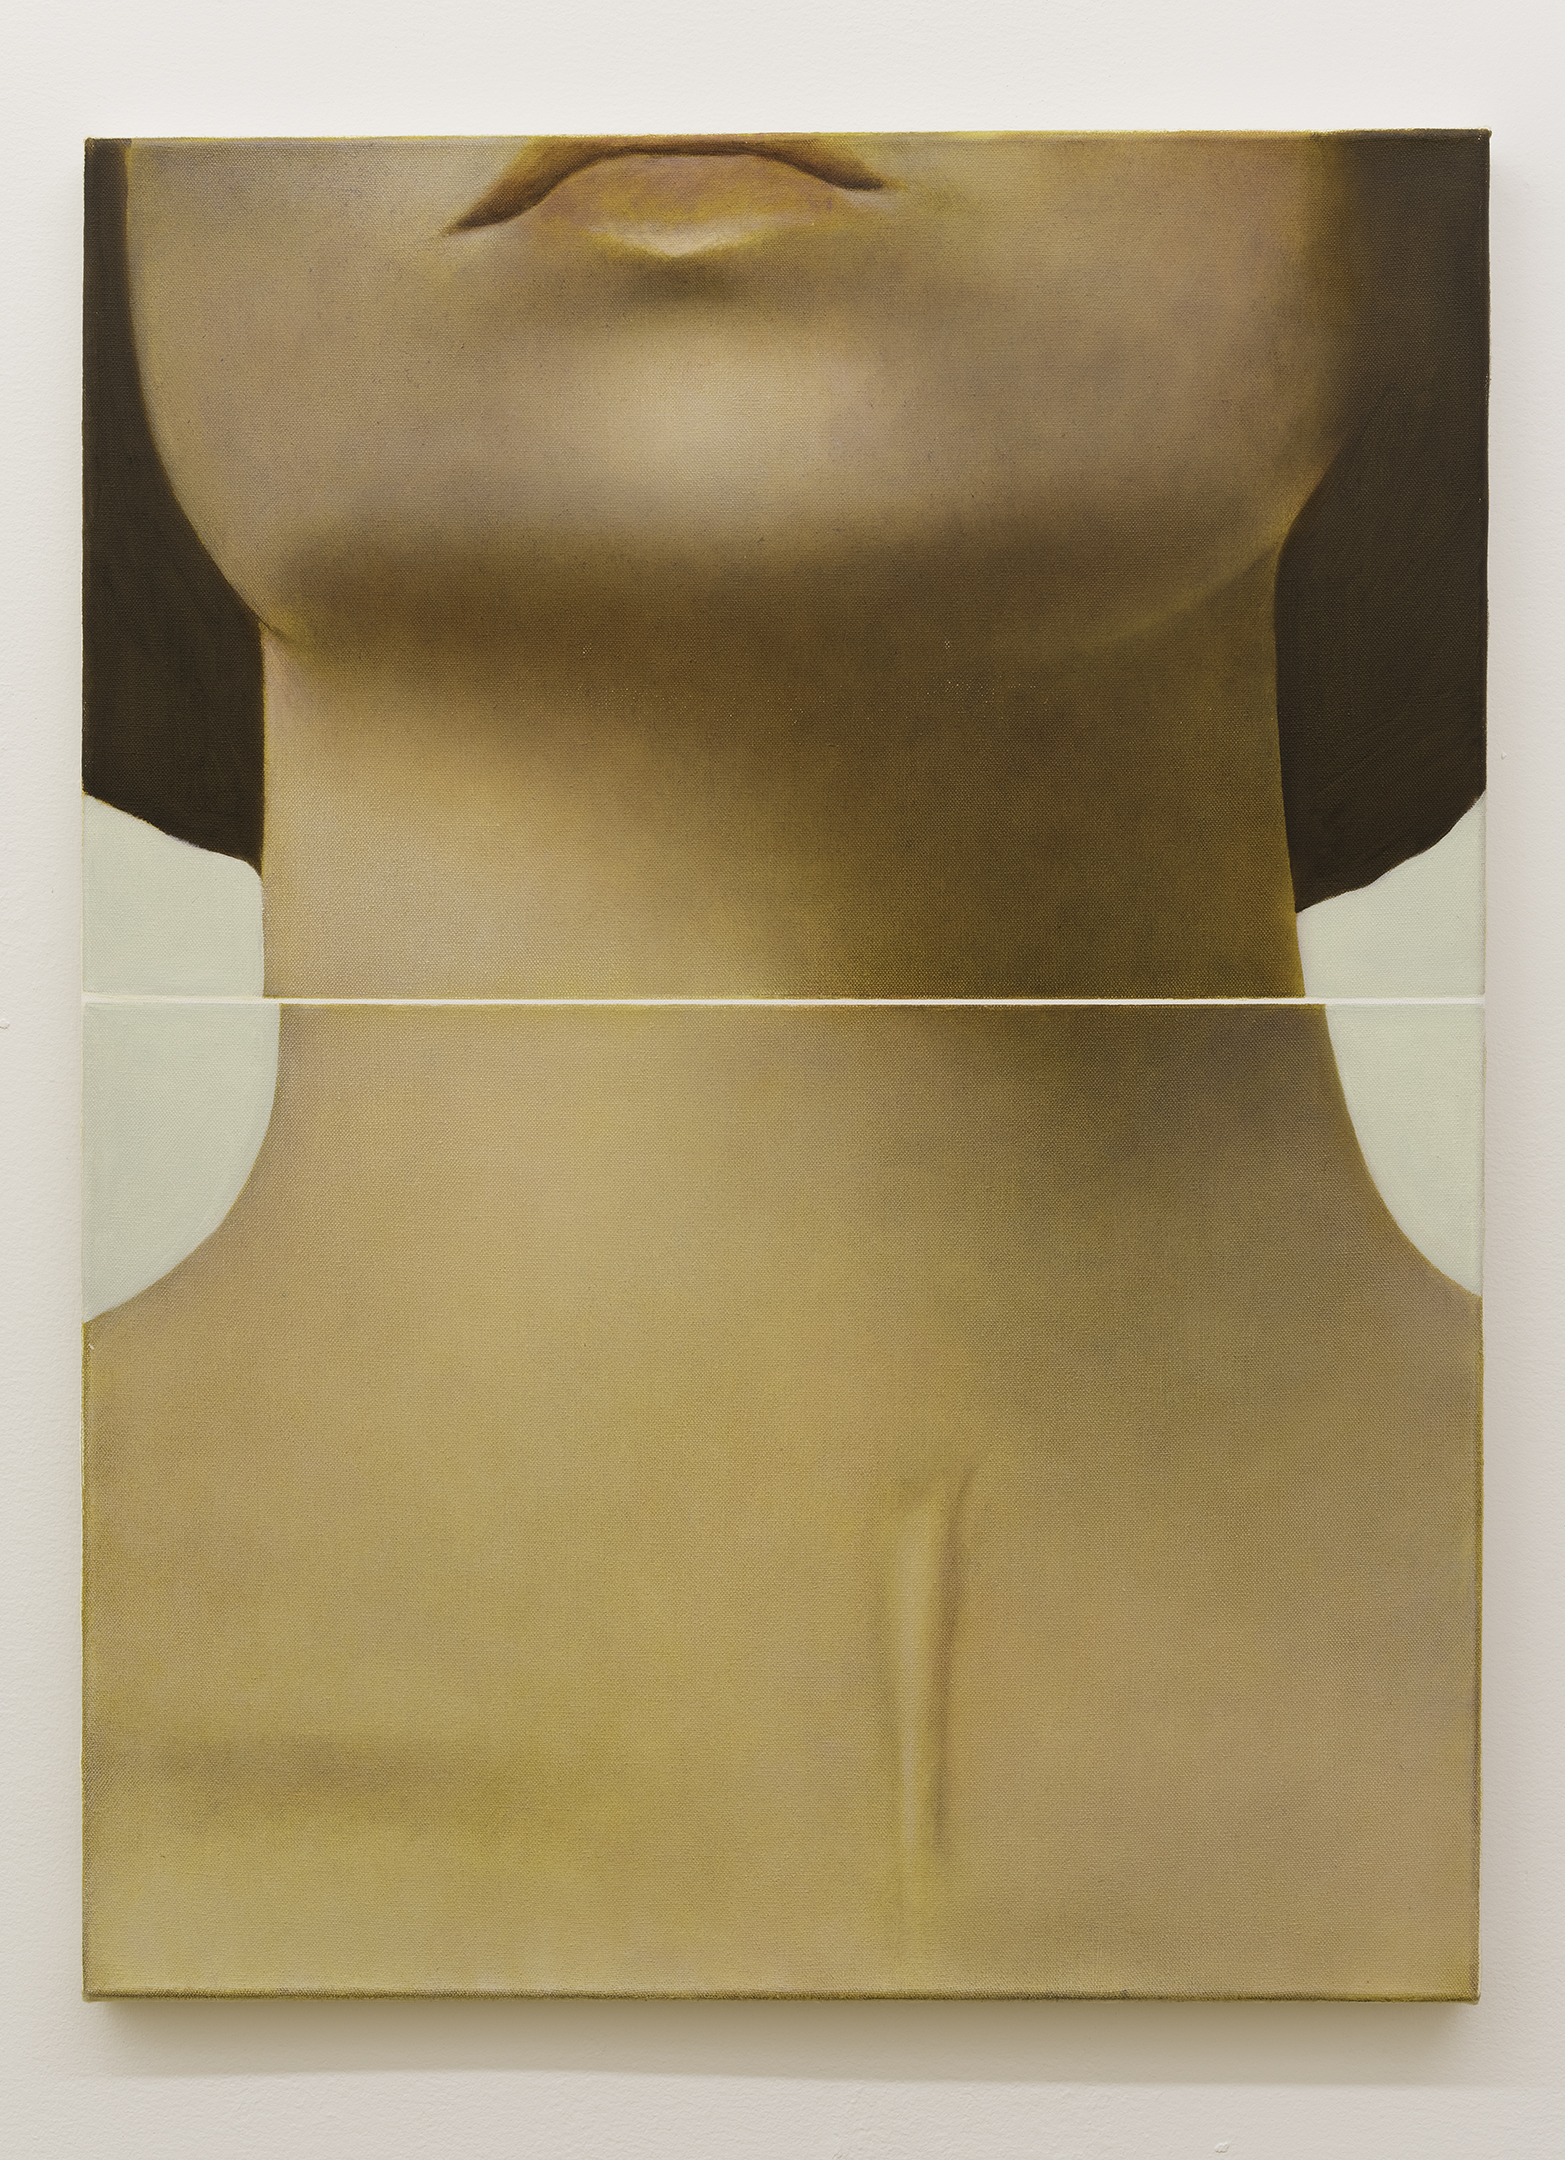 Louise giovanelli, split marker, 2019, oil on canvas, 23.6 x 19.6 in